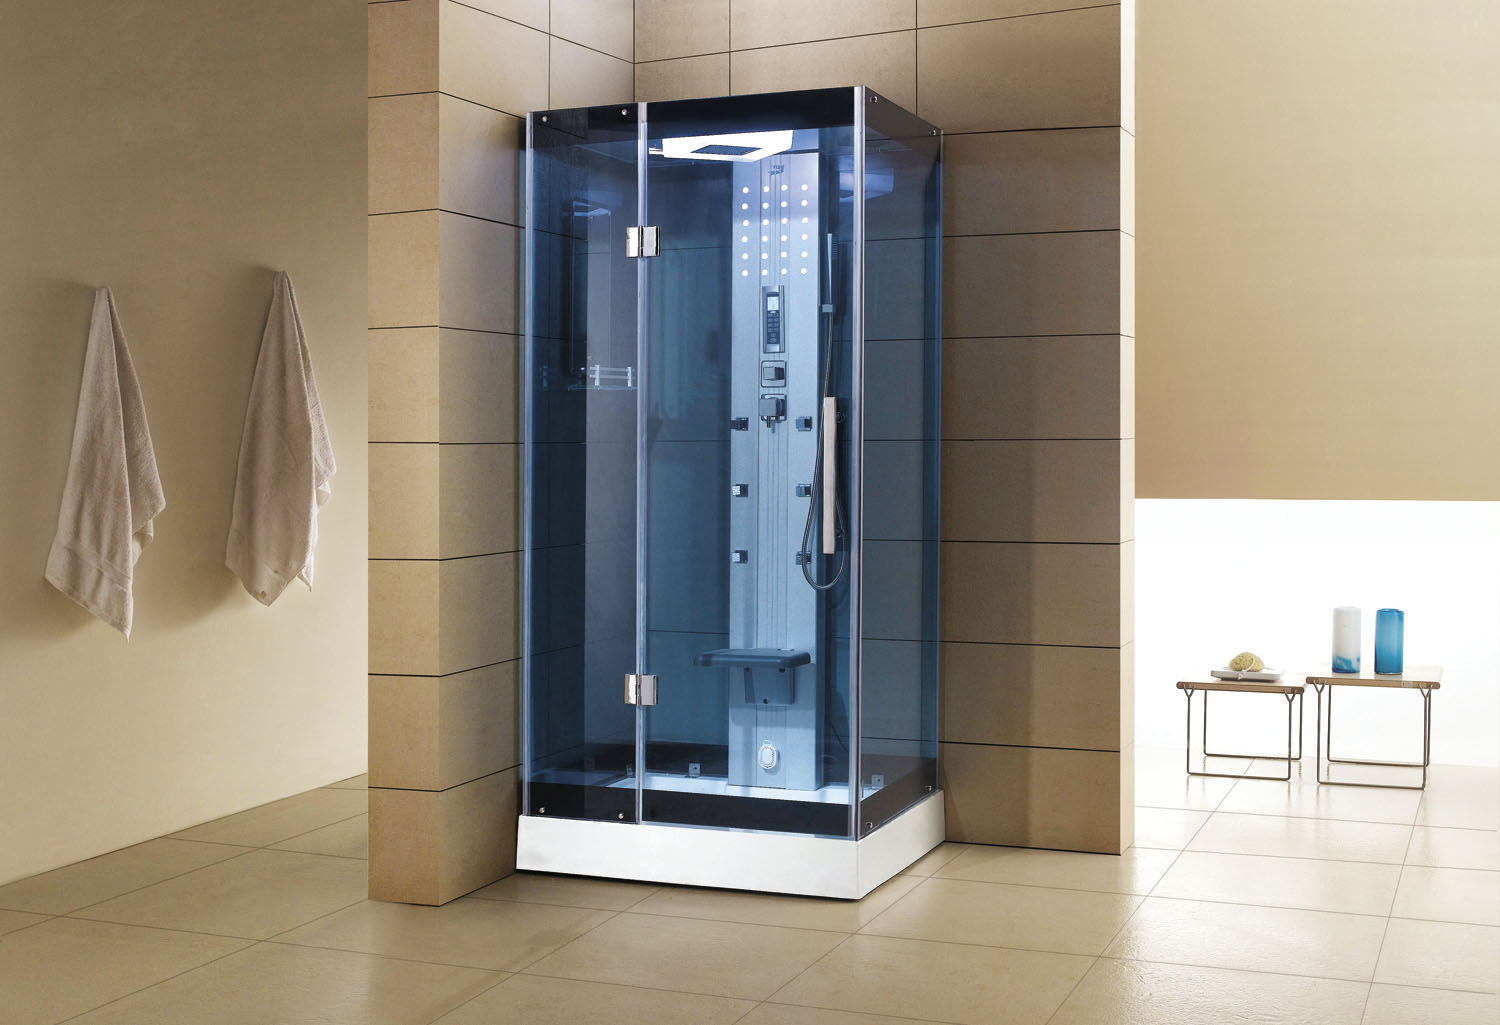 que devez vous savoir avant d installer votre cabine de douche hammam blog de l 39 hydromassage. Black Bedroom Furniture Sets. Home Design Ideas